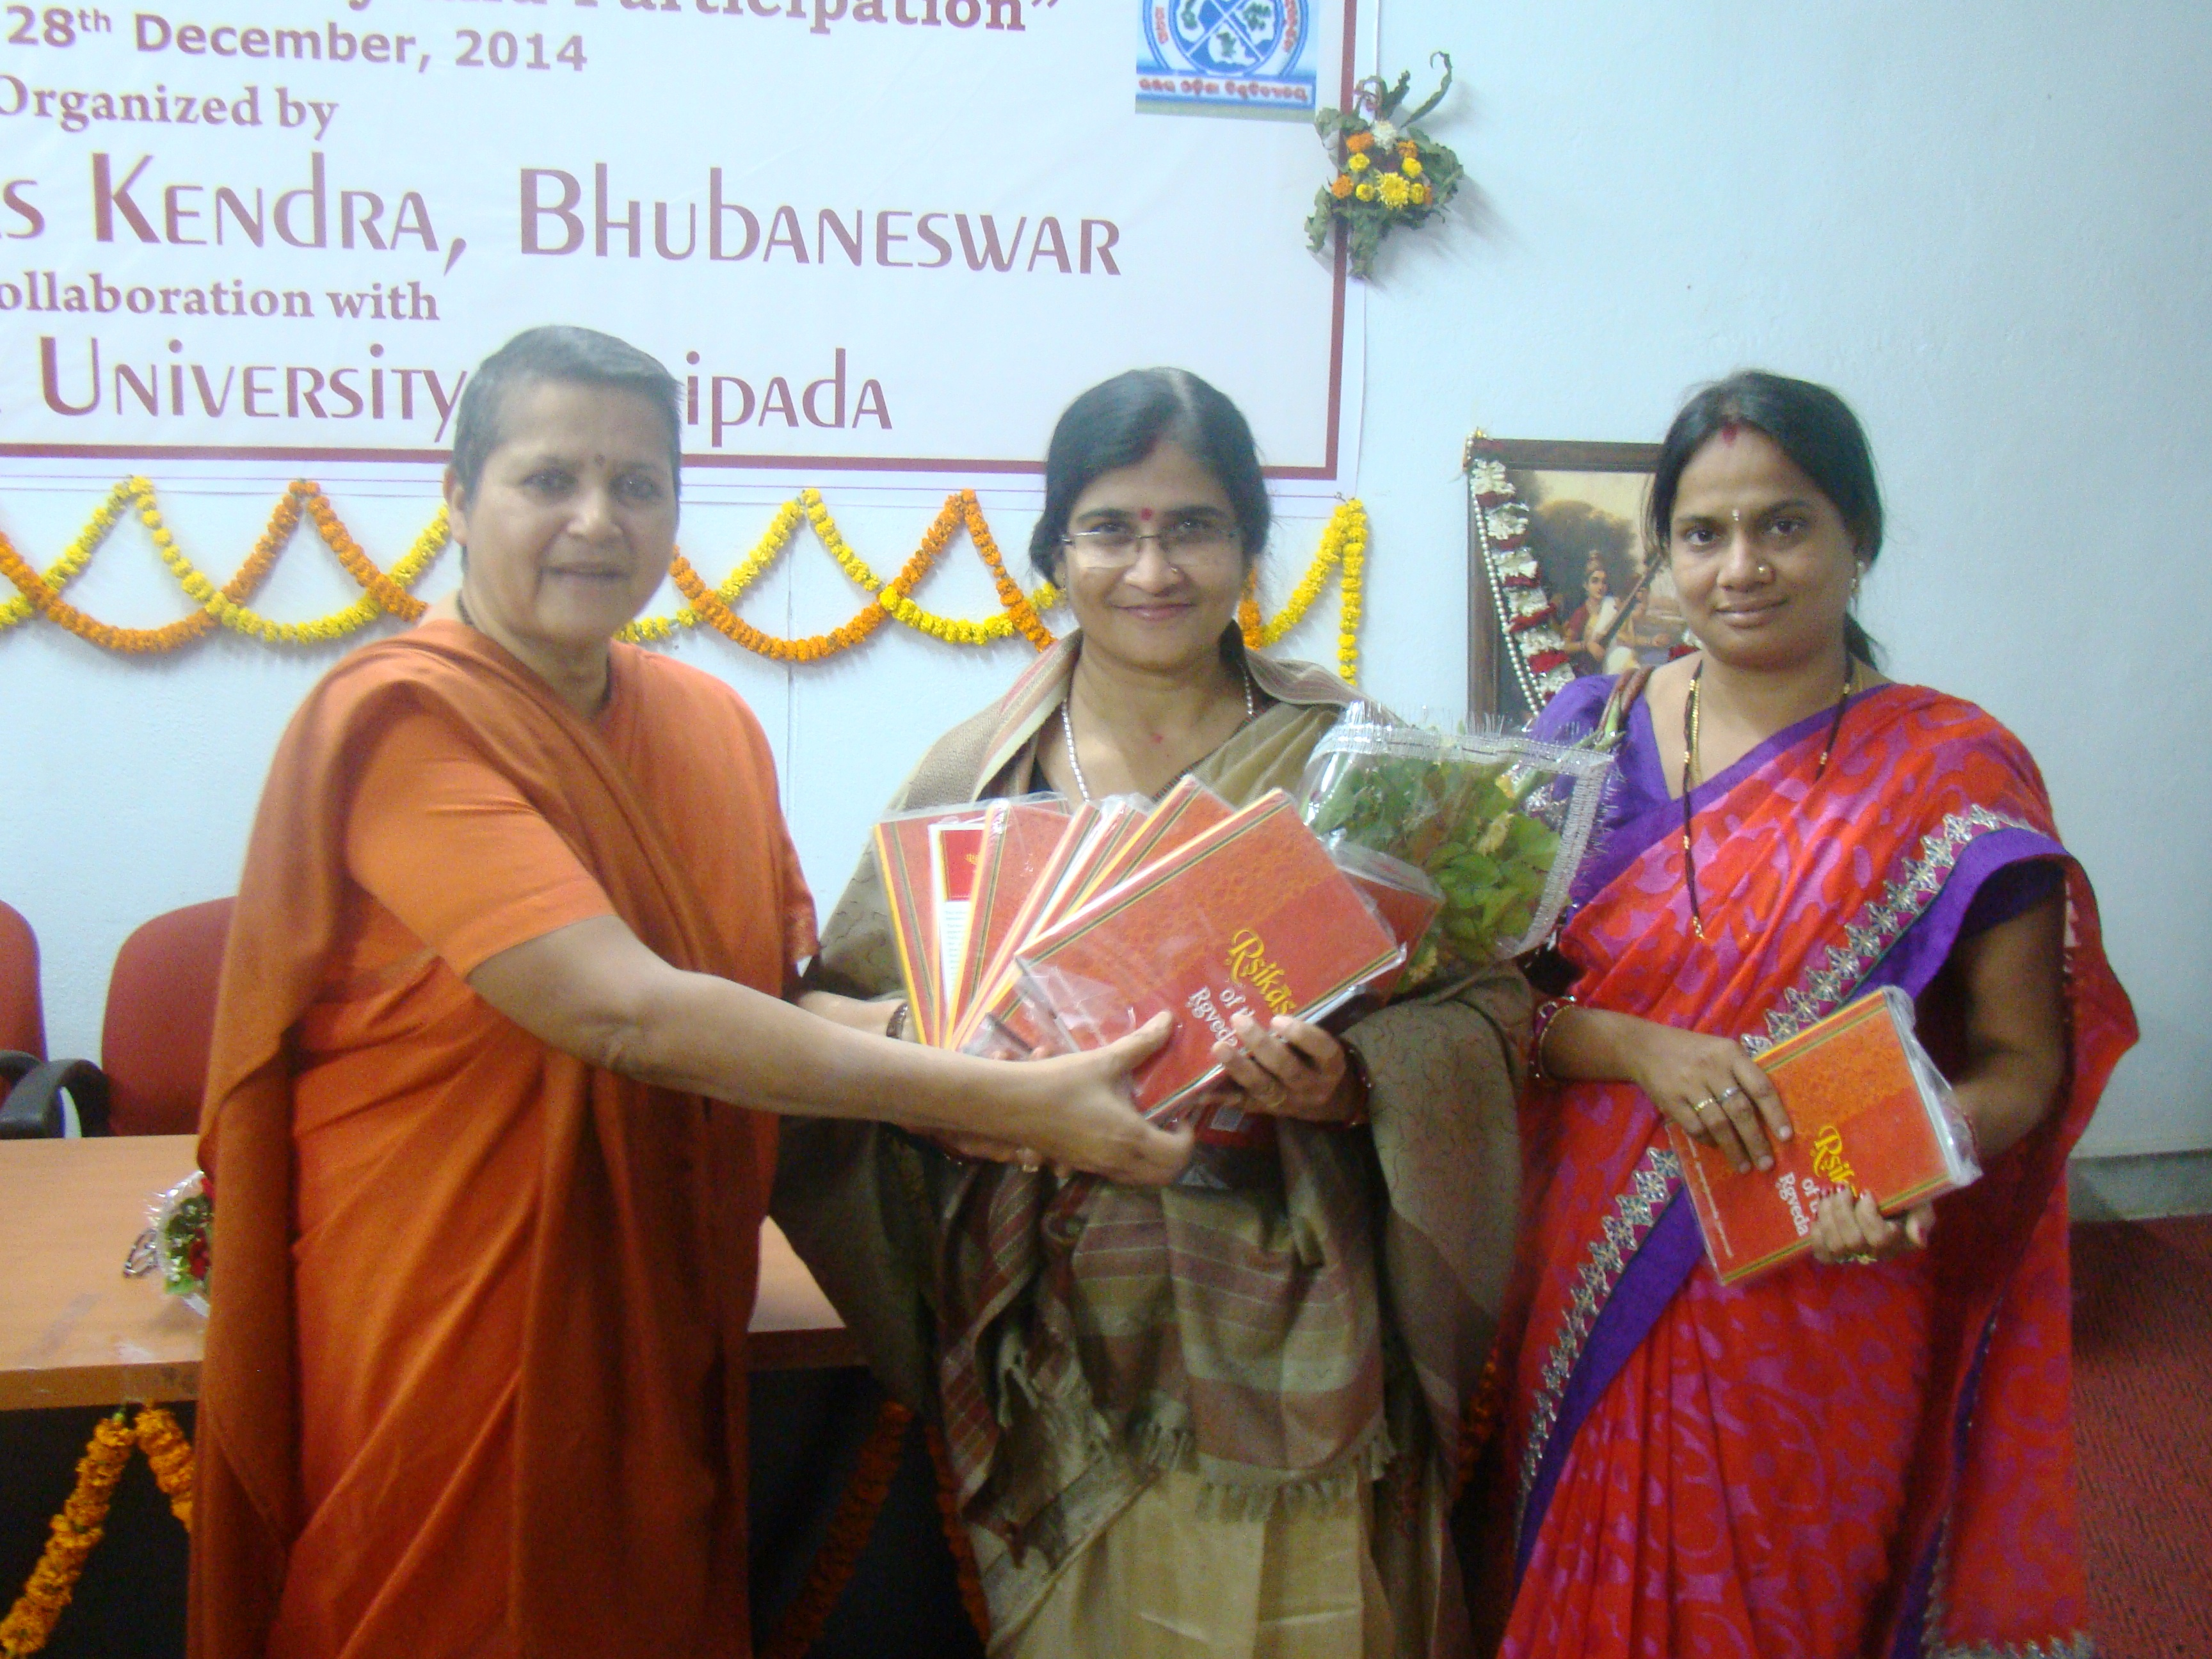 Swamini gifting her book - Rshikas of the Rgveda to the women poets